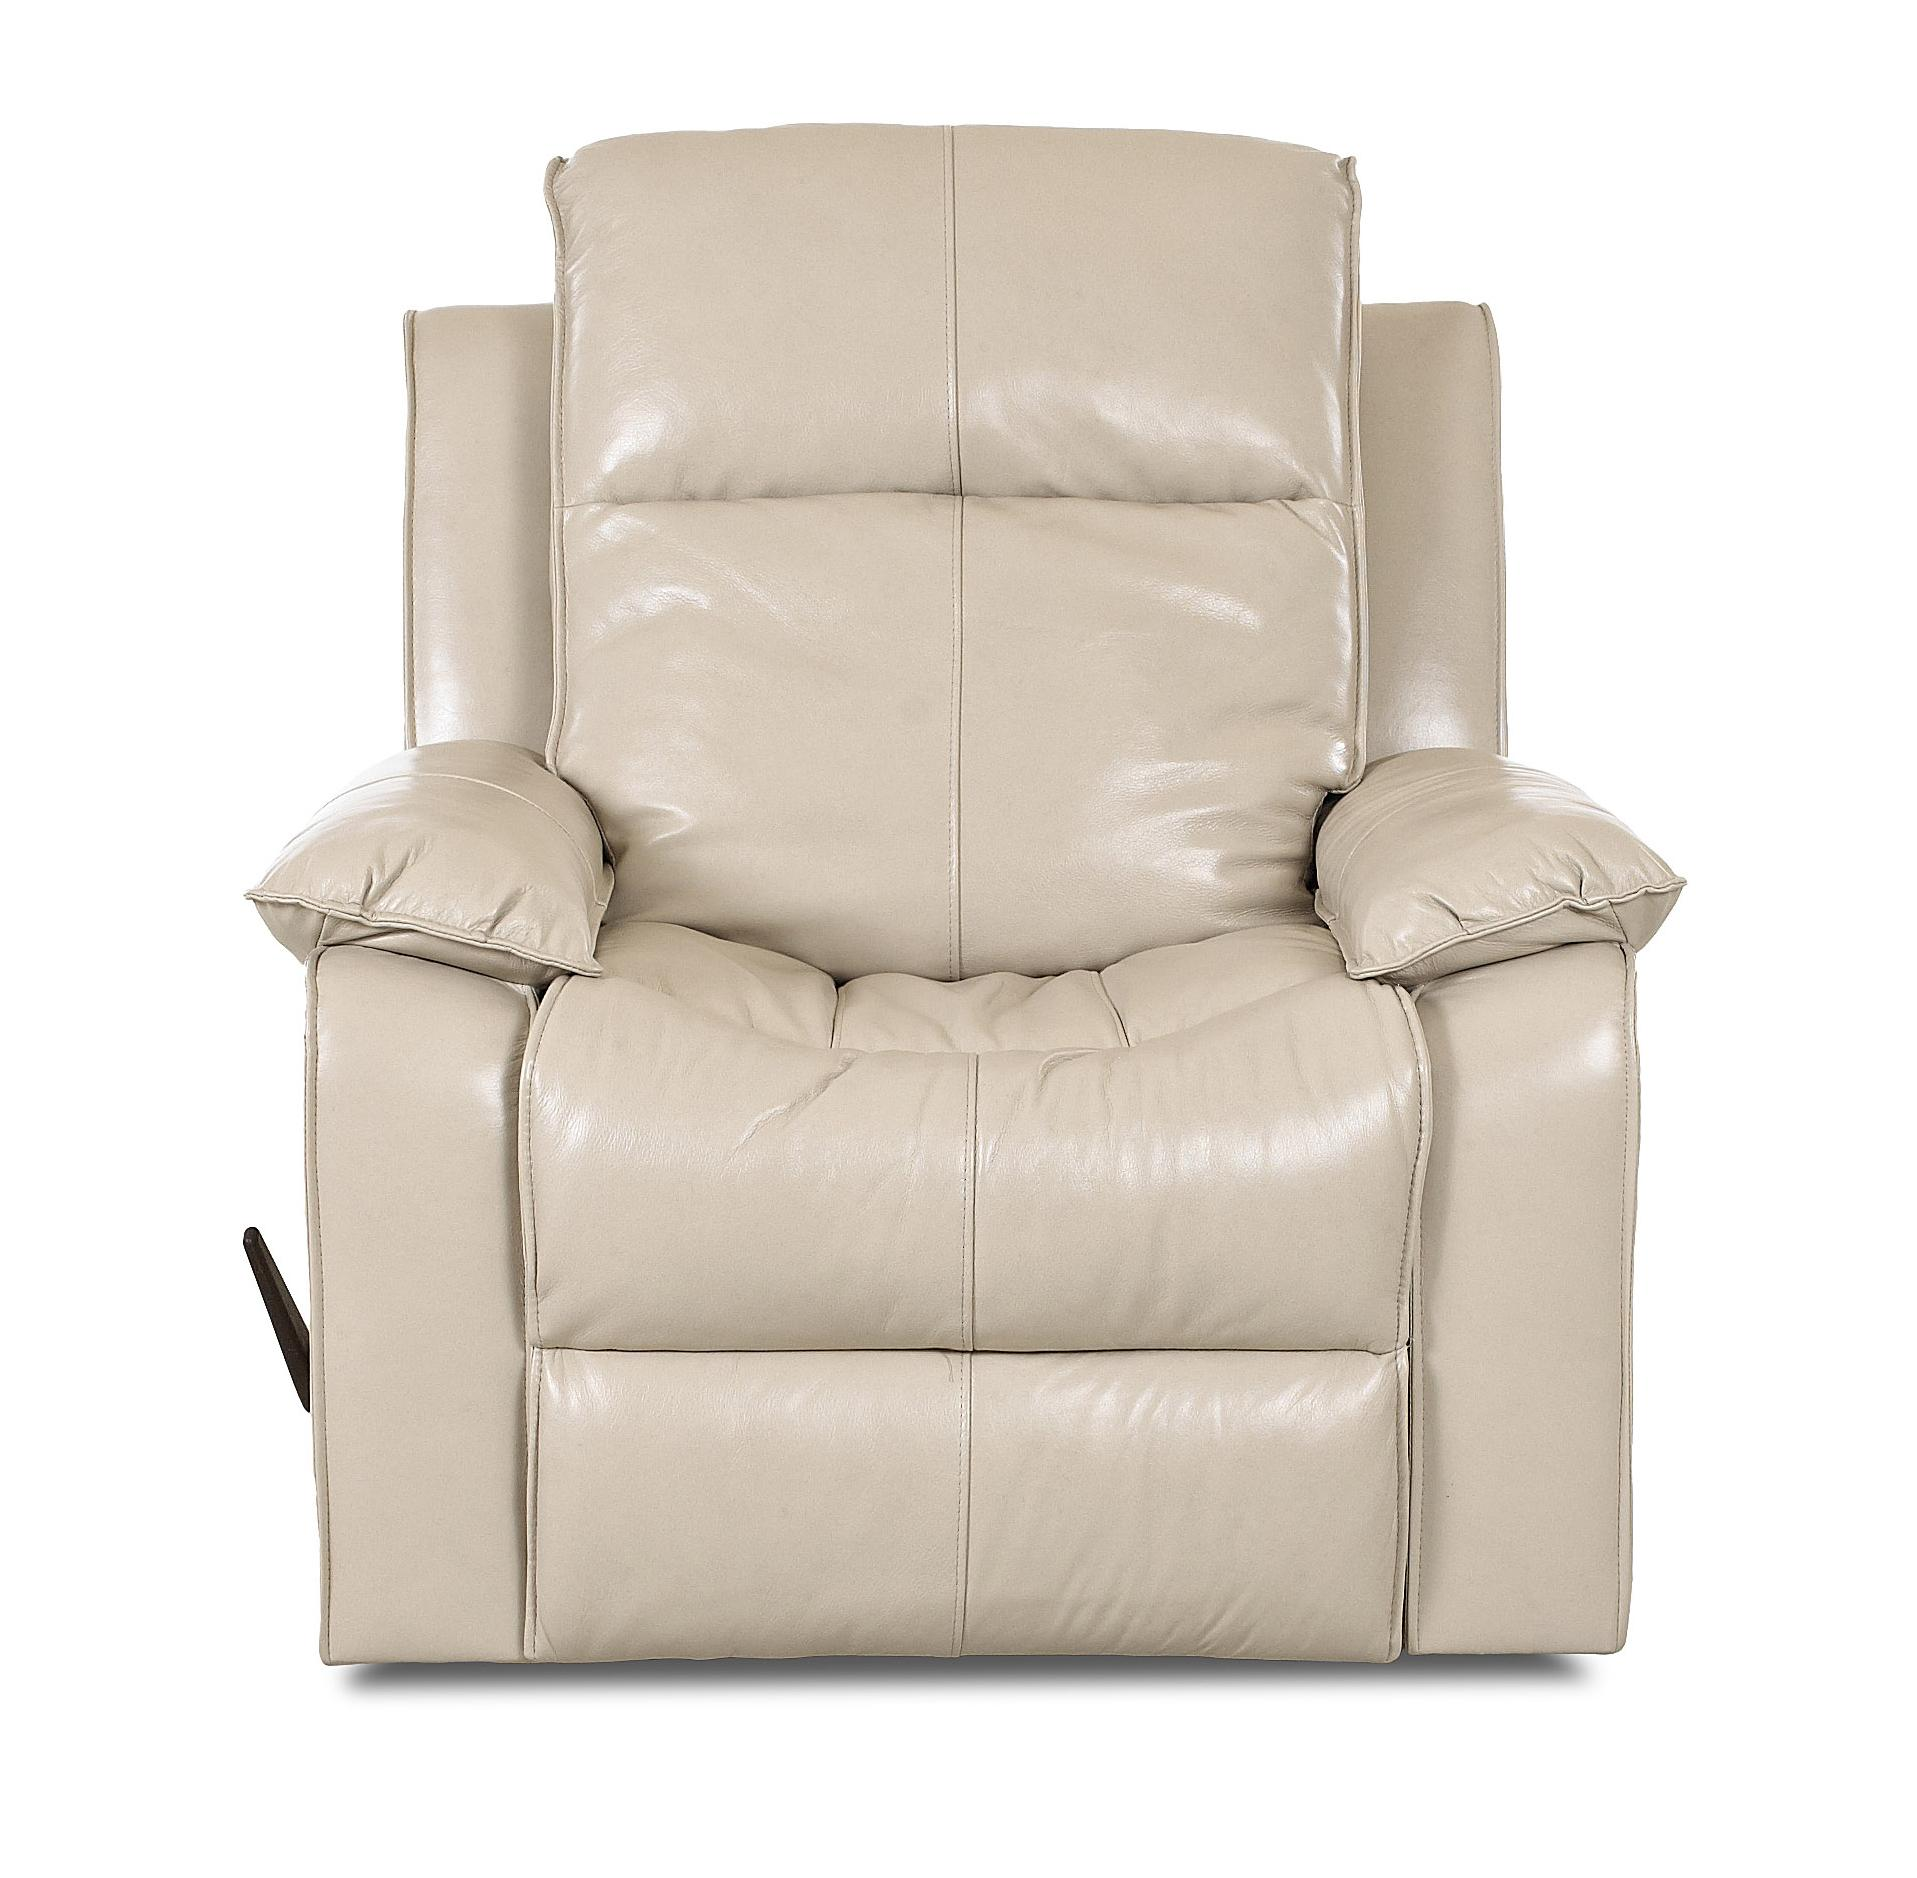 Reclining Rocking Chair Castaway Casual Reclining Rocking Chair With Bucket Seat